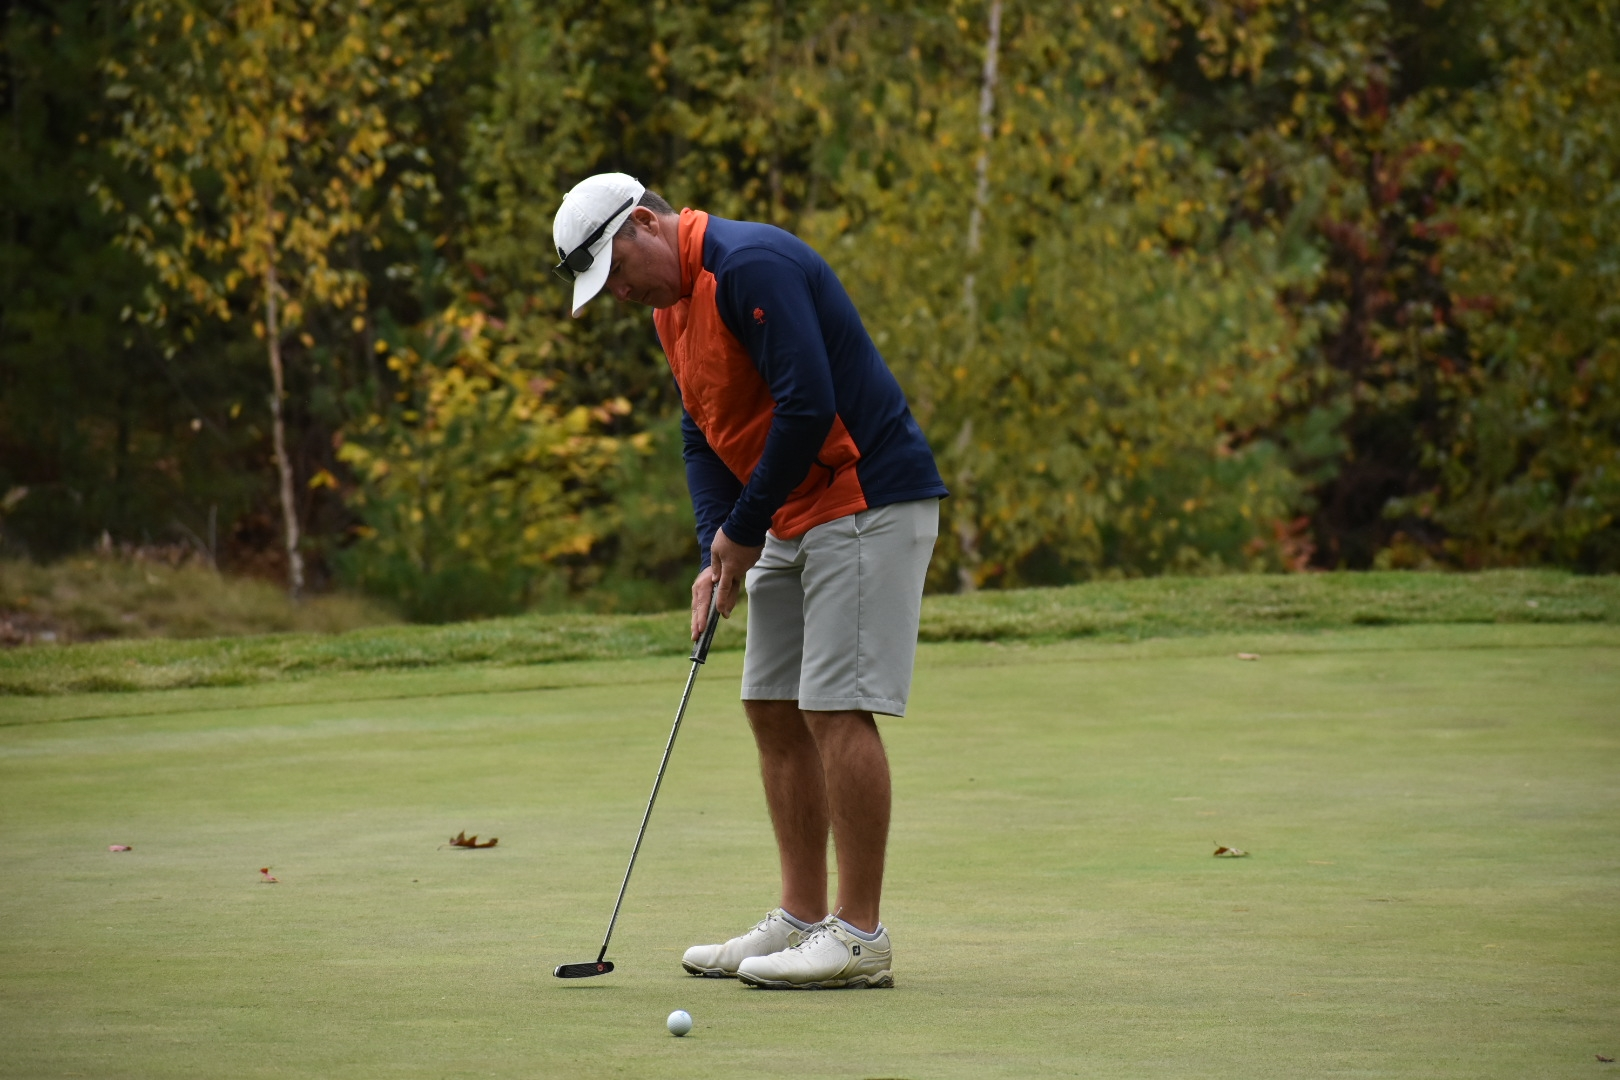 Wilson Heads to Second Round of NH Mid-Amateur With Two-Shot Leads After Opening Round 69